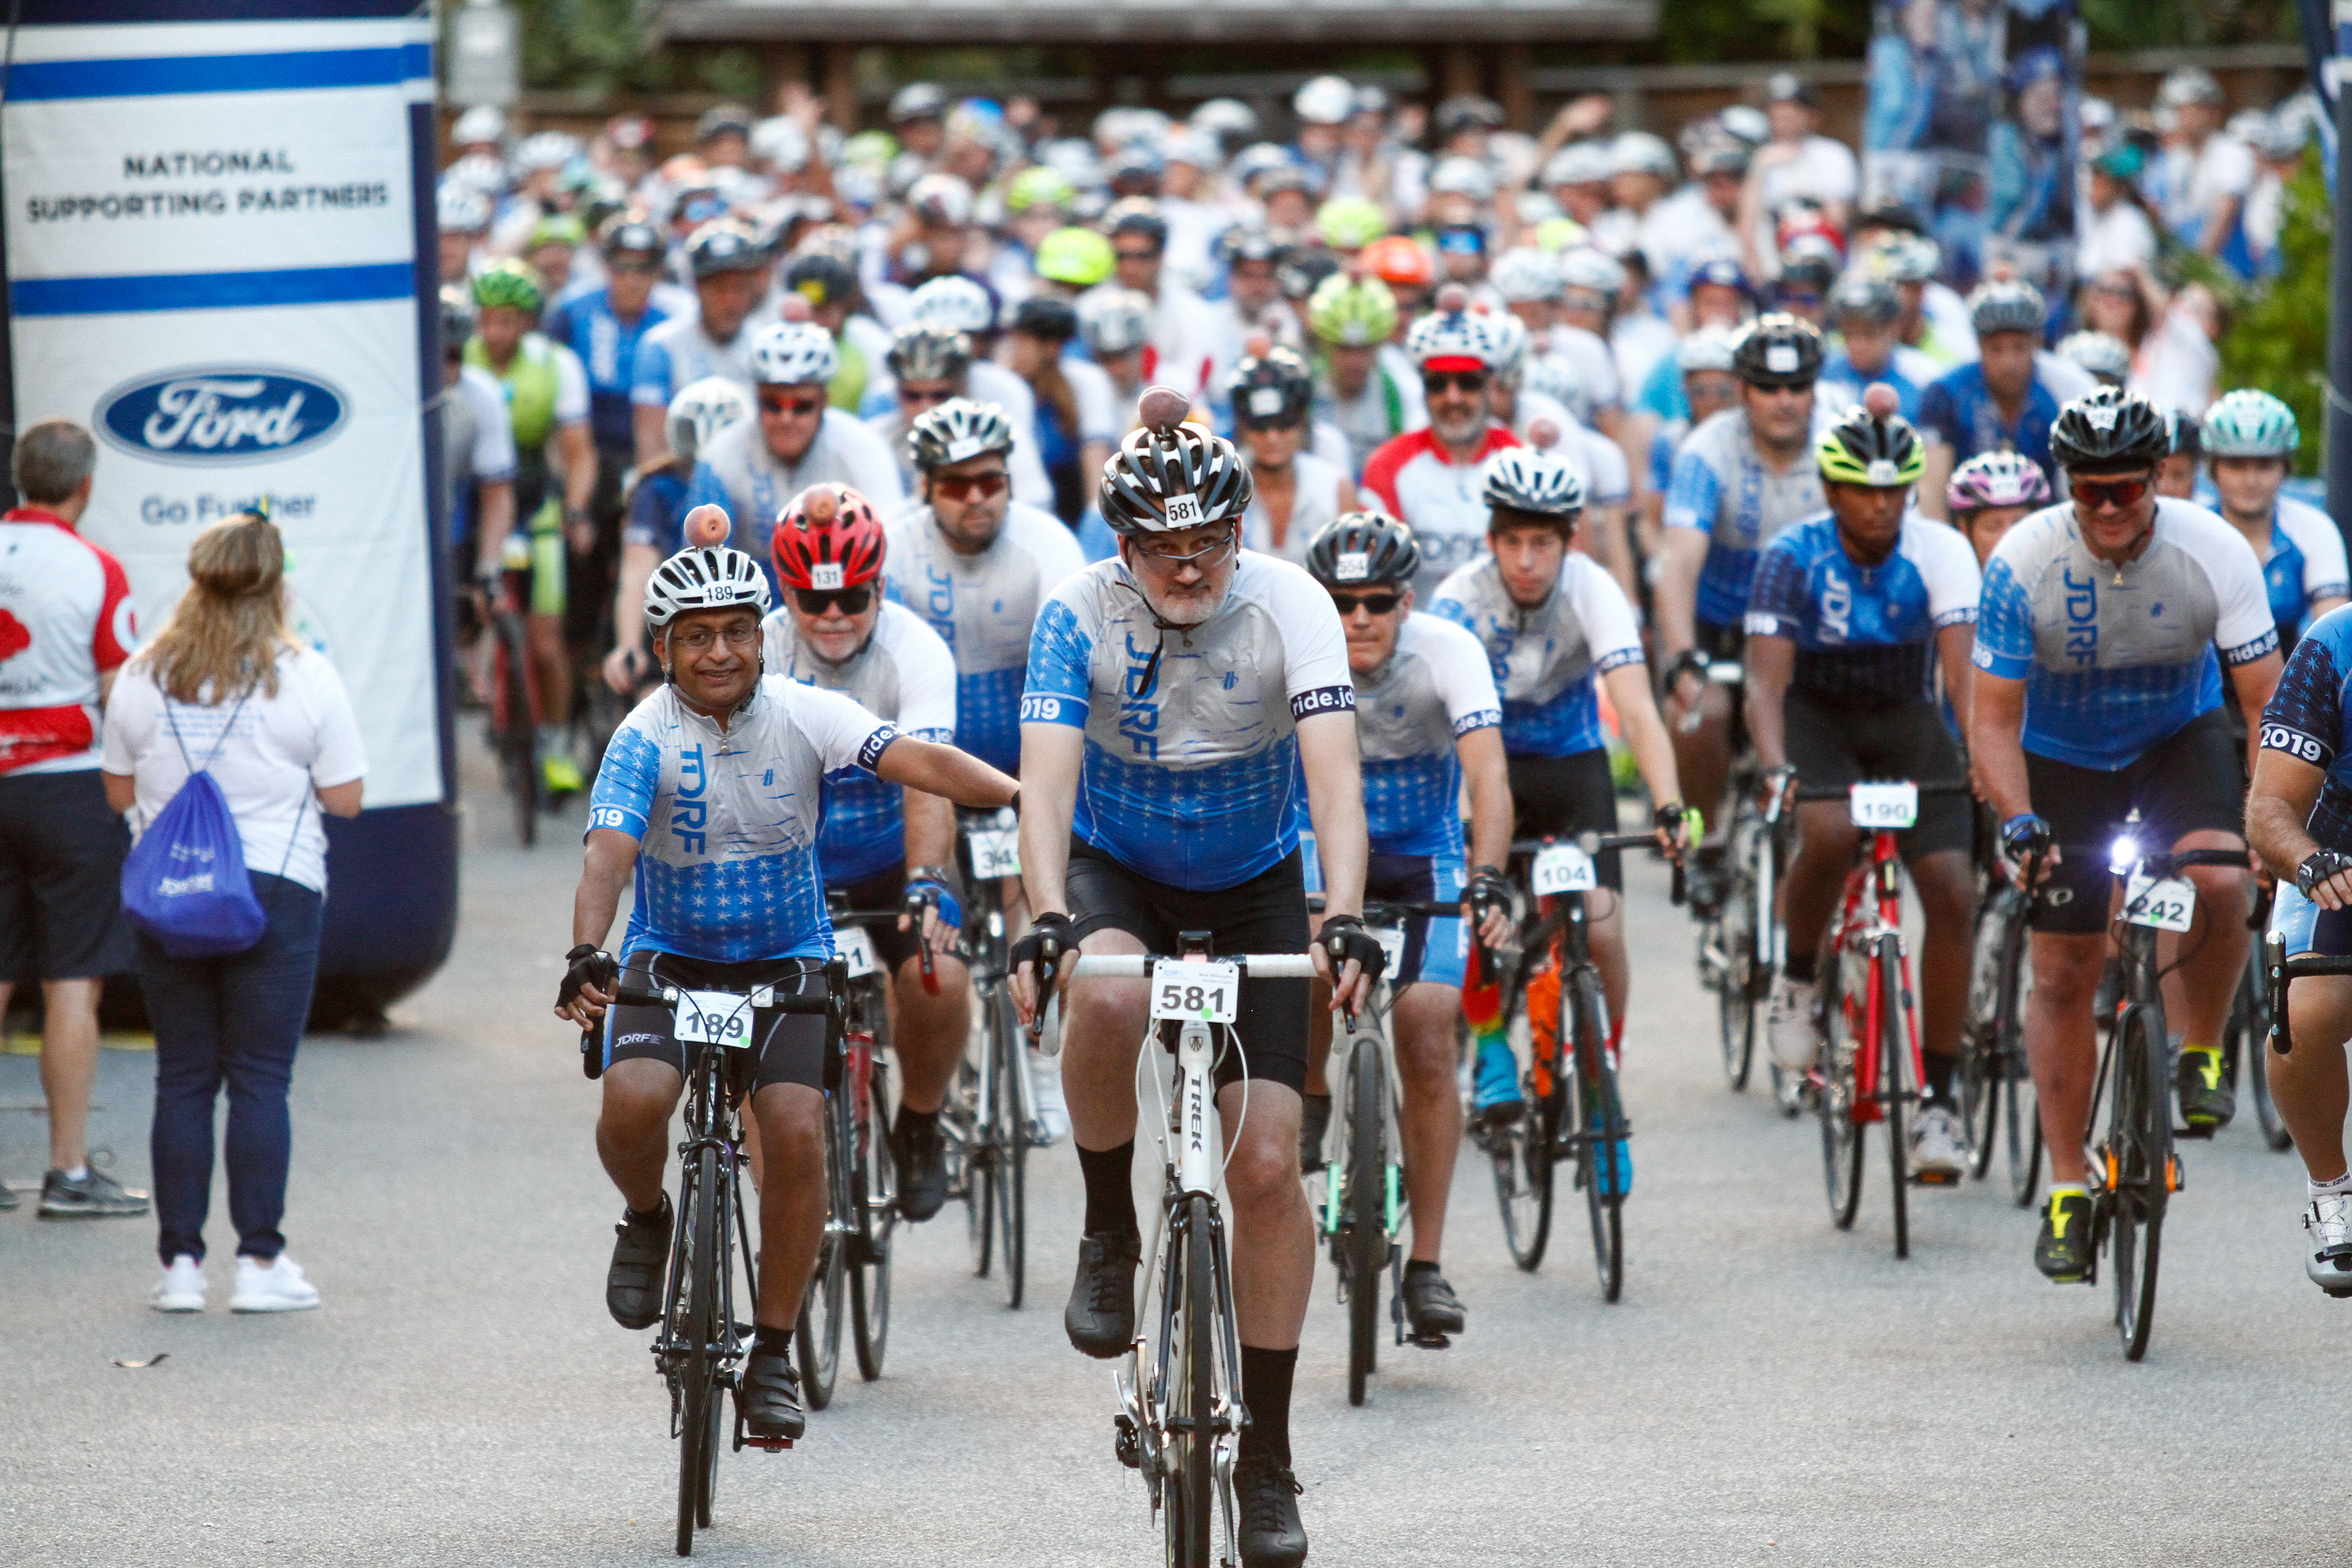 Mark Willoughby led a group of cyclists in participating in the JDRF (Juvenile Diabetes Research Foundation) Ride for the Cure on Amelia Island